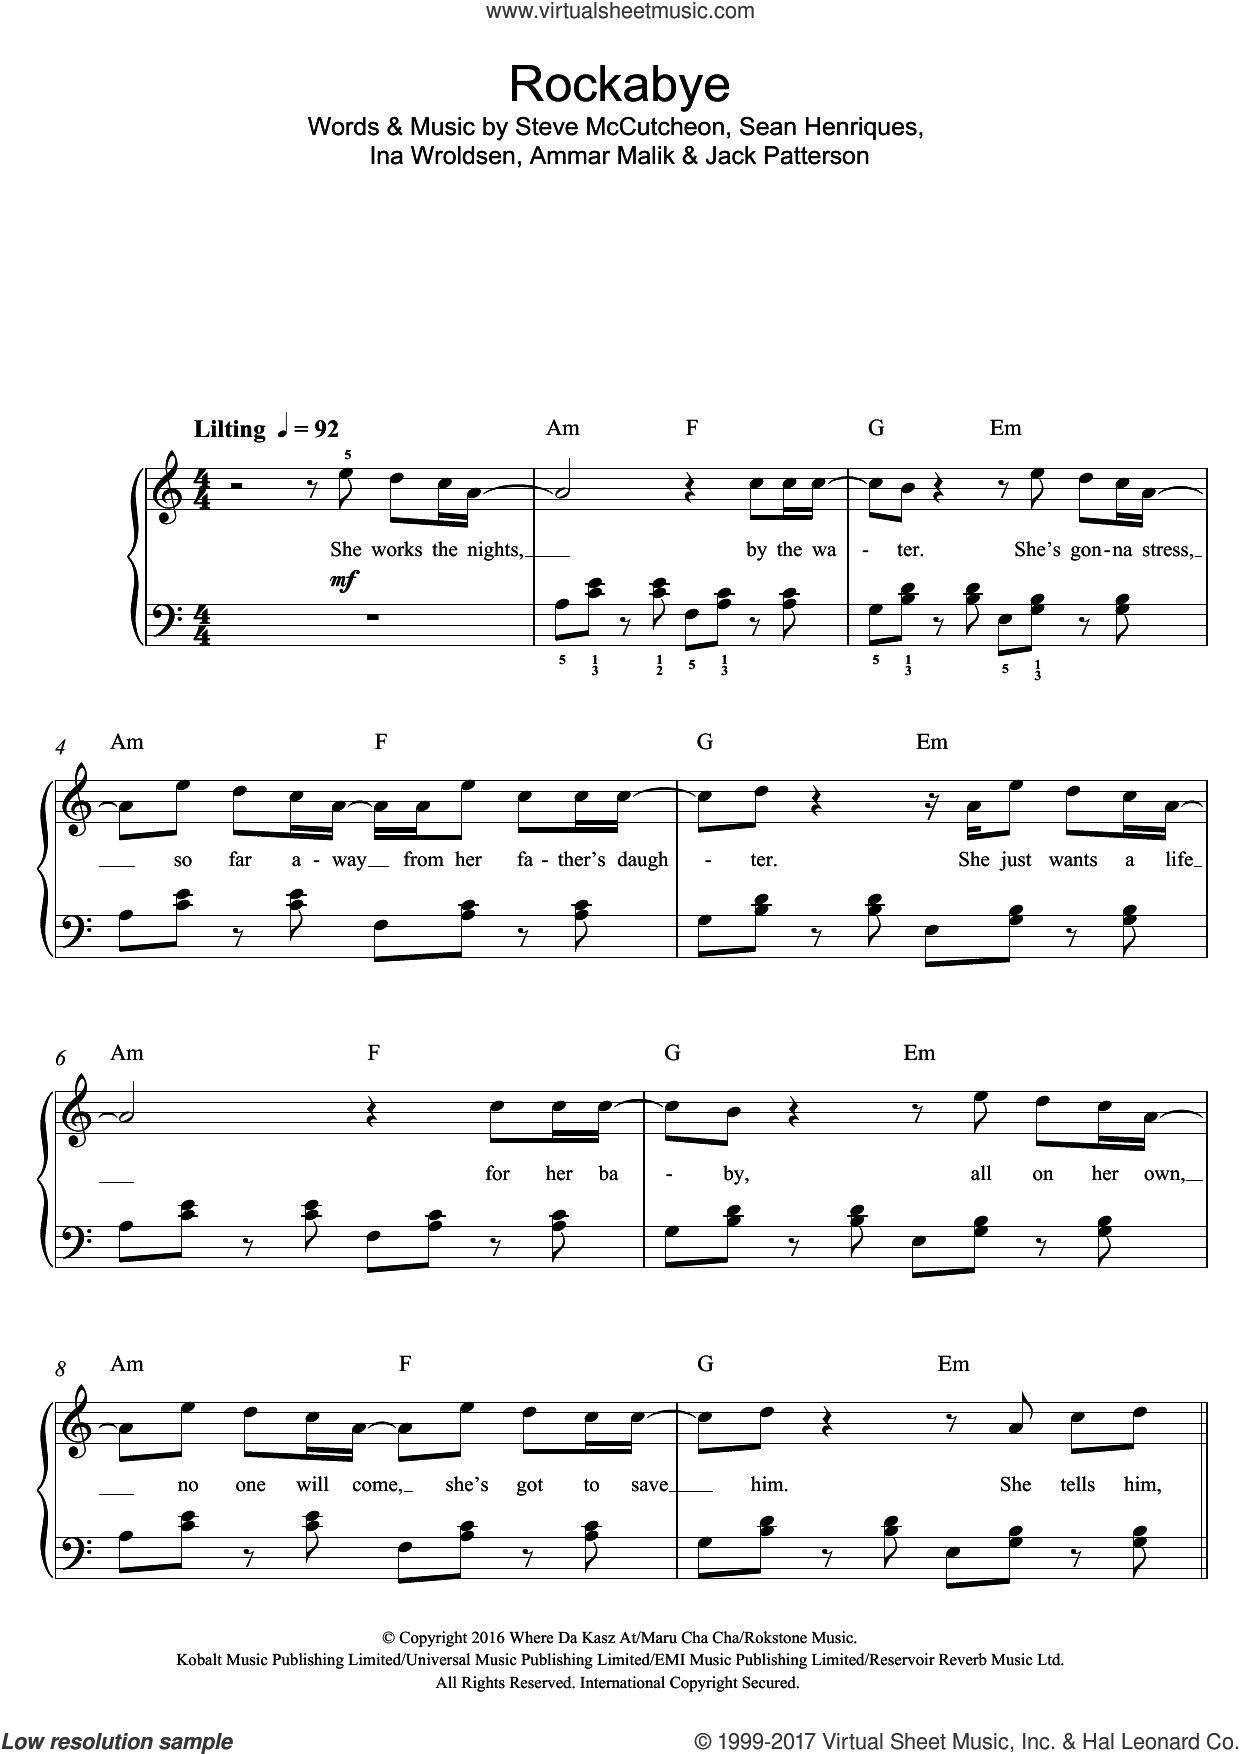 Rockabye (featuring Sean Paul and Anne-Marie) sheet music for piano solo (beginners) by Clean Bandit, Anne-Marie, Sean Paul, Ammar Malik, Ina Wroldsen, Jack Patterson, Sean Henriques and Steve McCutcheon, beginner piano (beginners)